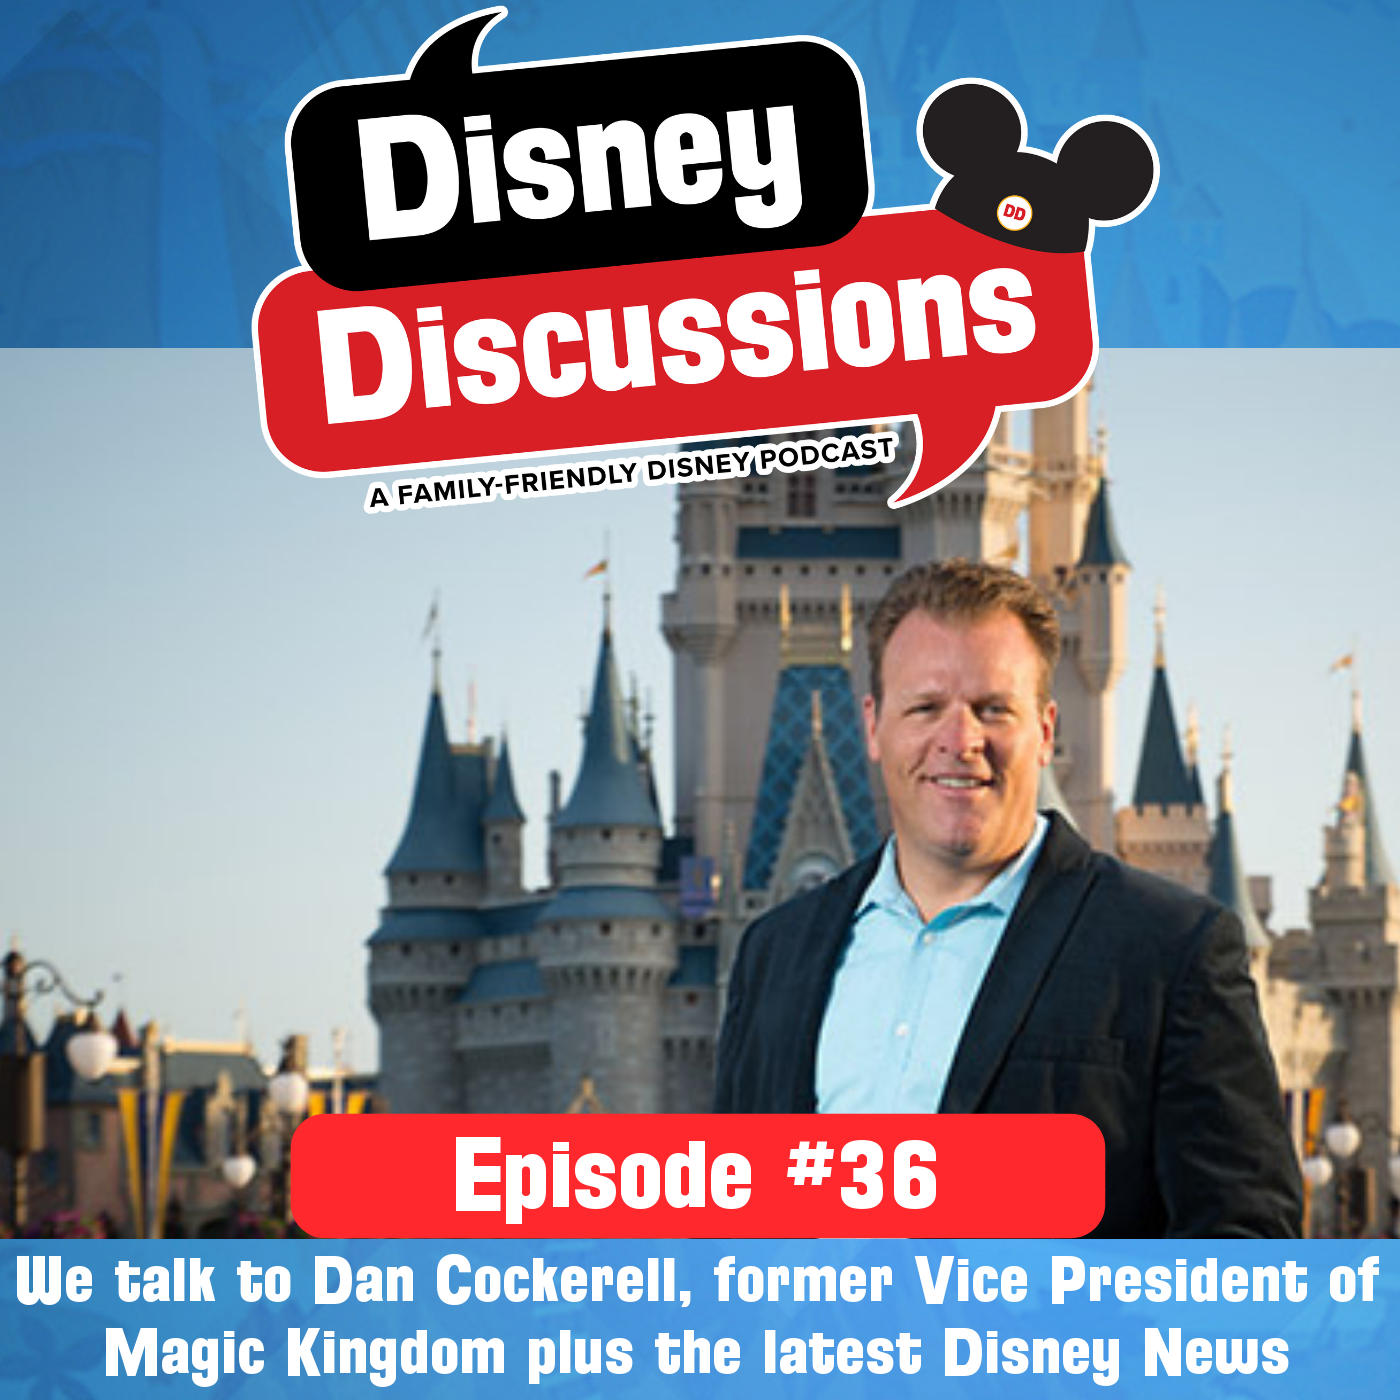 We talk to Dan Cockerell, former Vice President of Magic Kingdom plus the latest Disney News